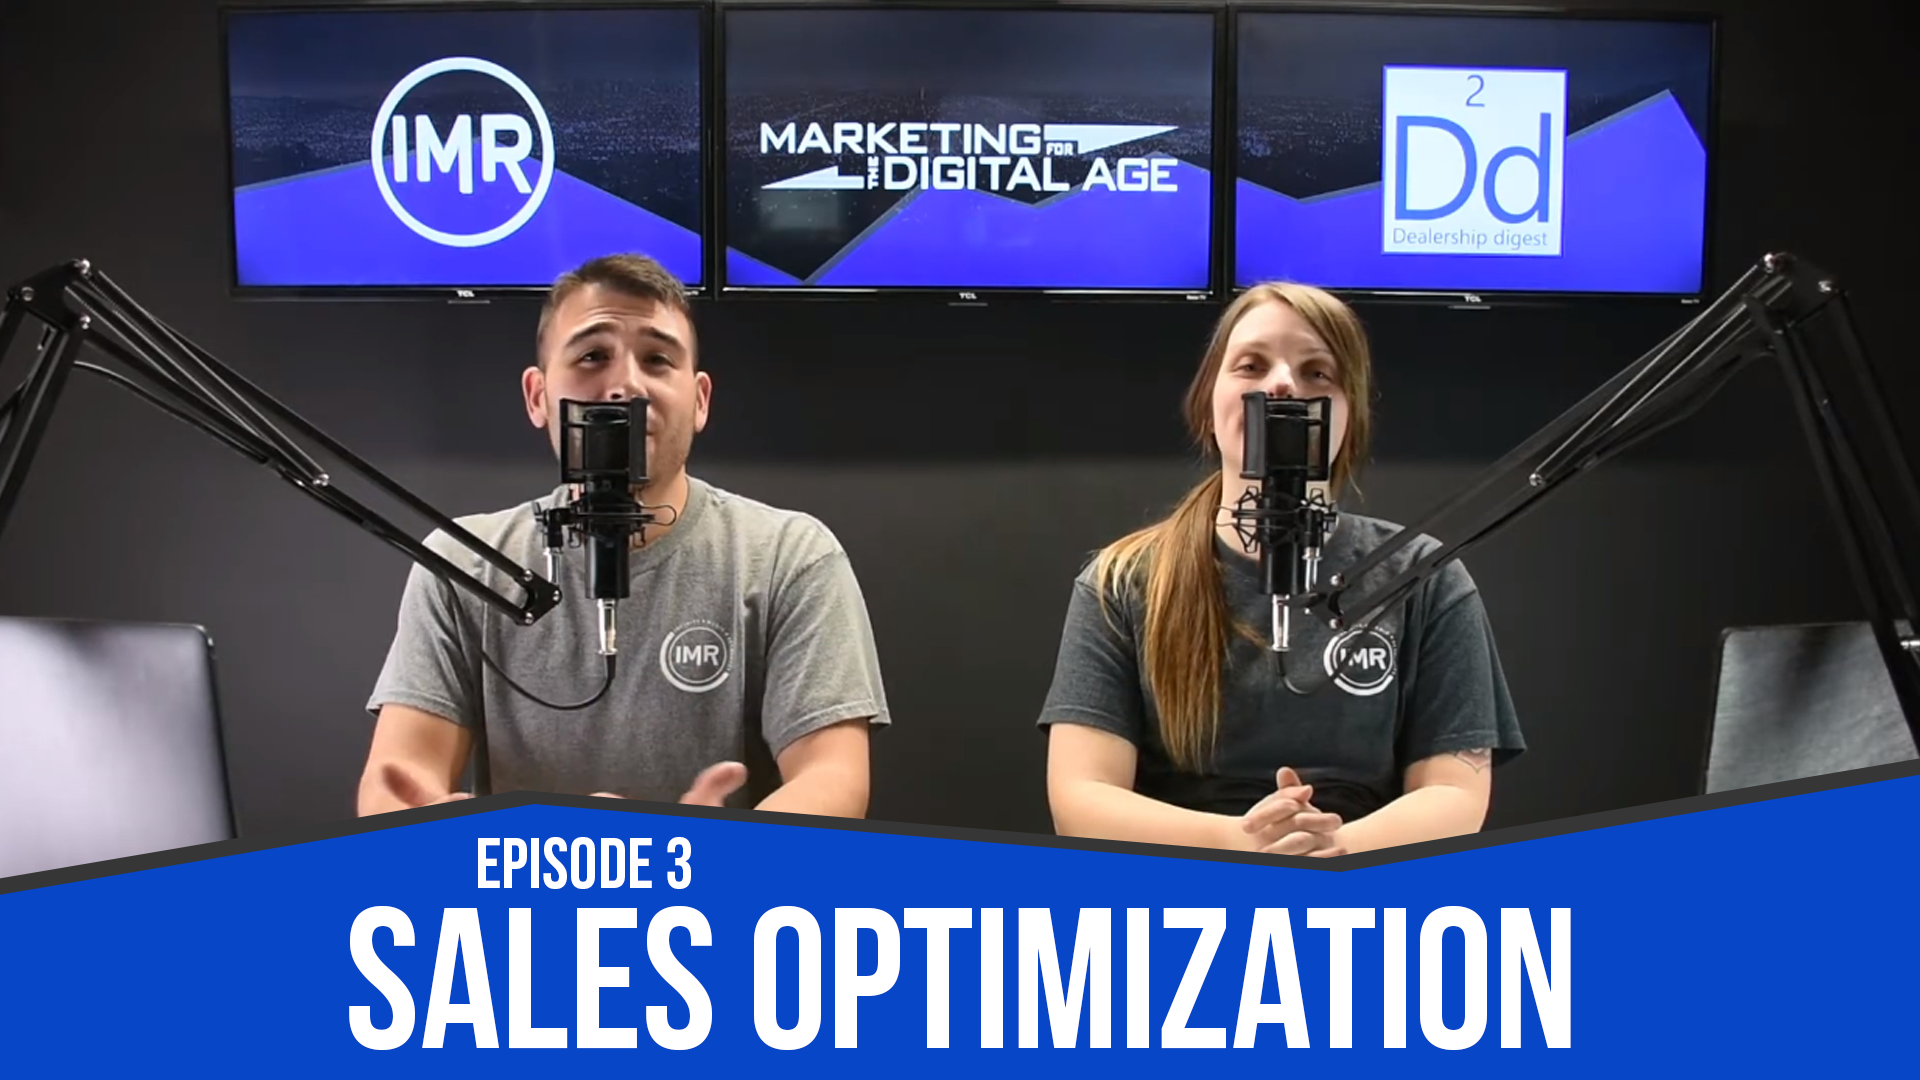 dealership digest episode 3 sales optimization for your dealership